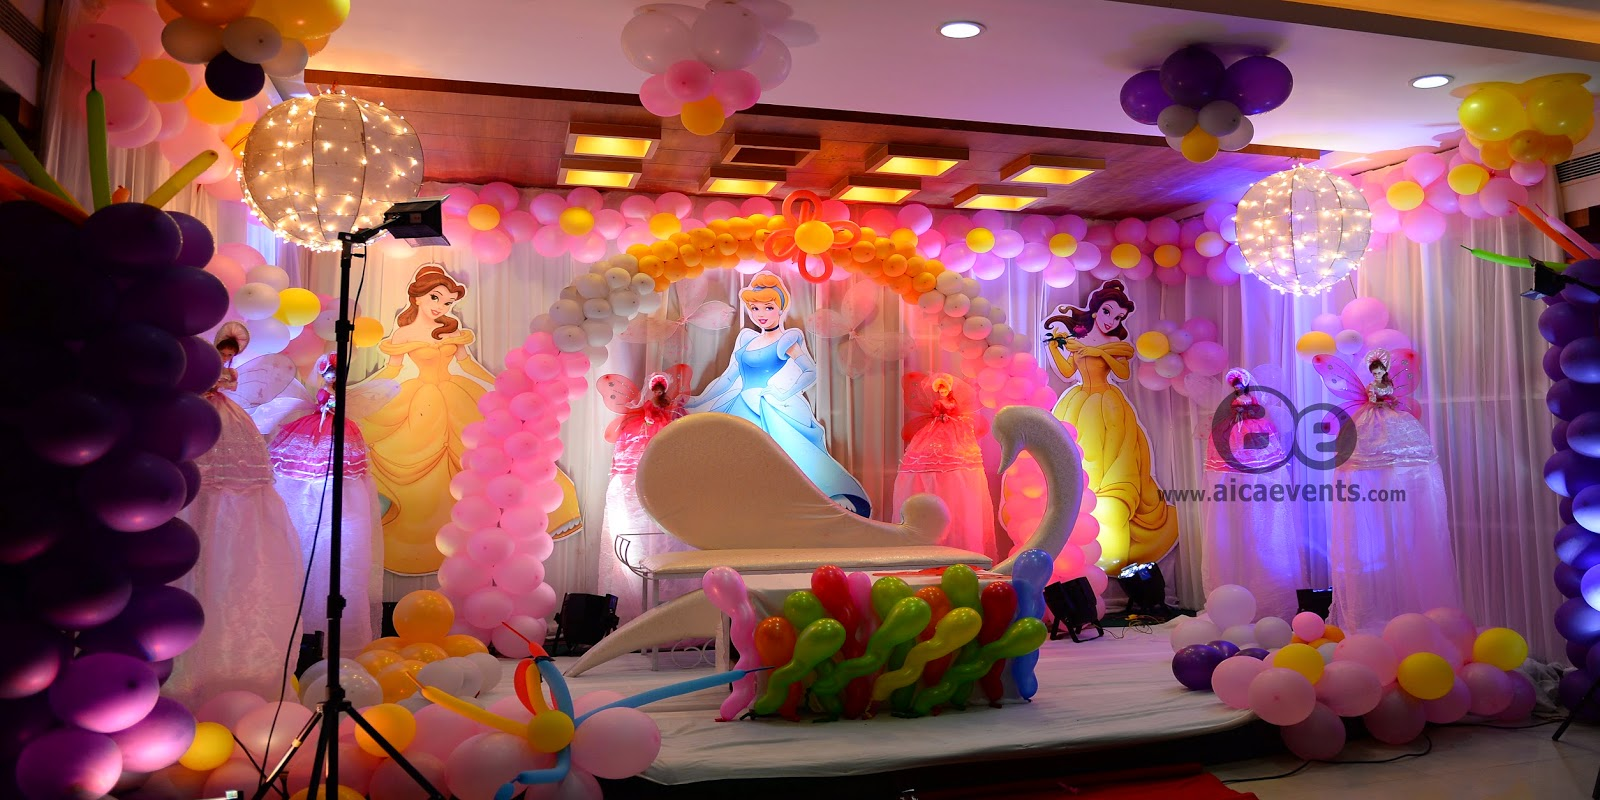 Aicaevents barbie theme decorations by aica events for Bday decoration